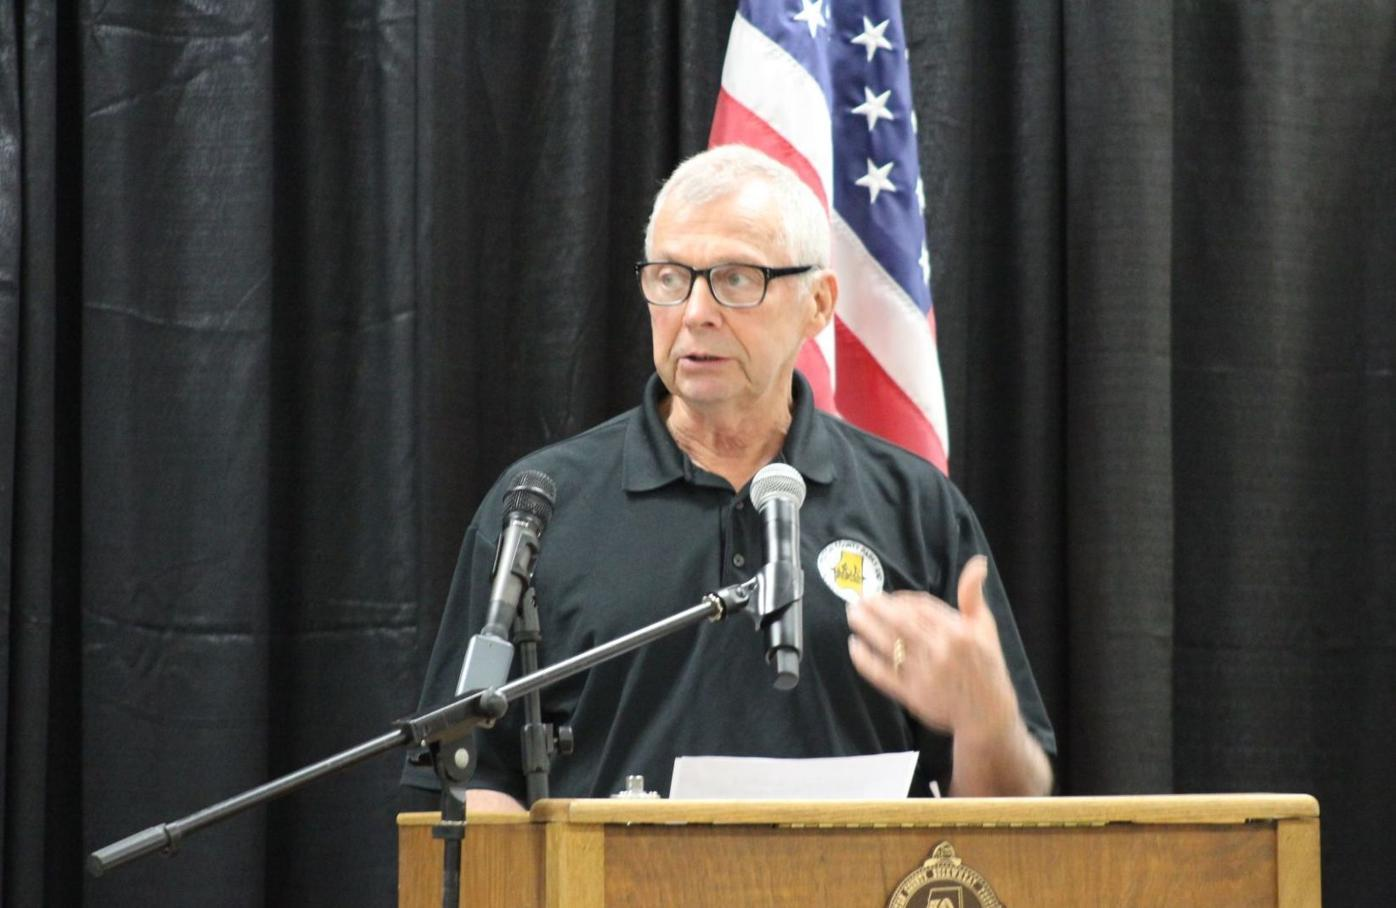 McVicker state of the county